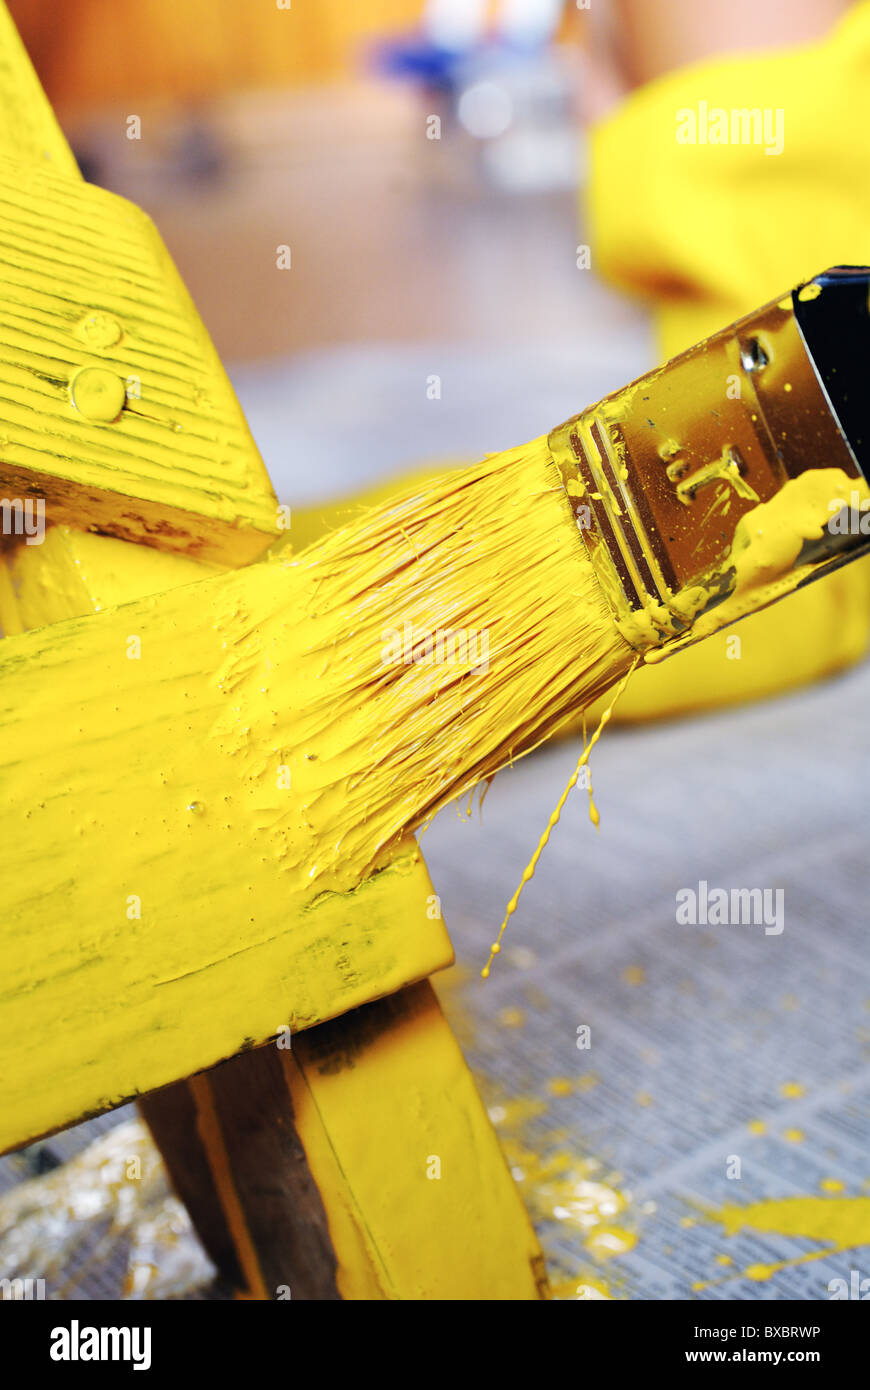 Painting with a paint brush - Stock Image